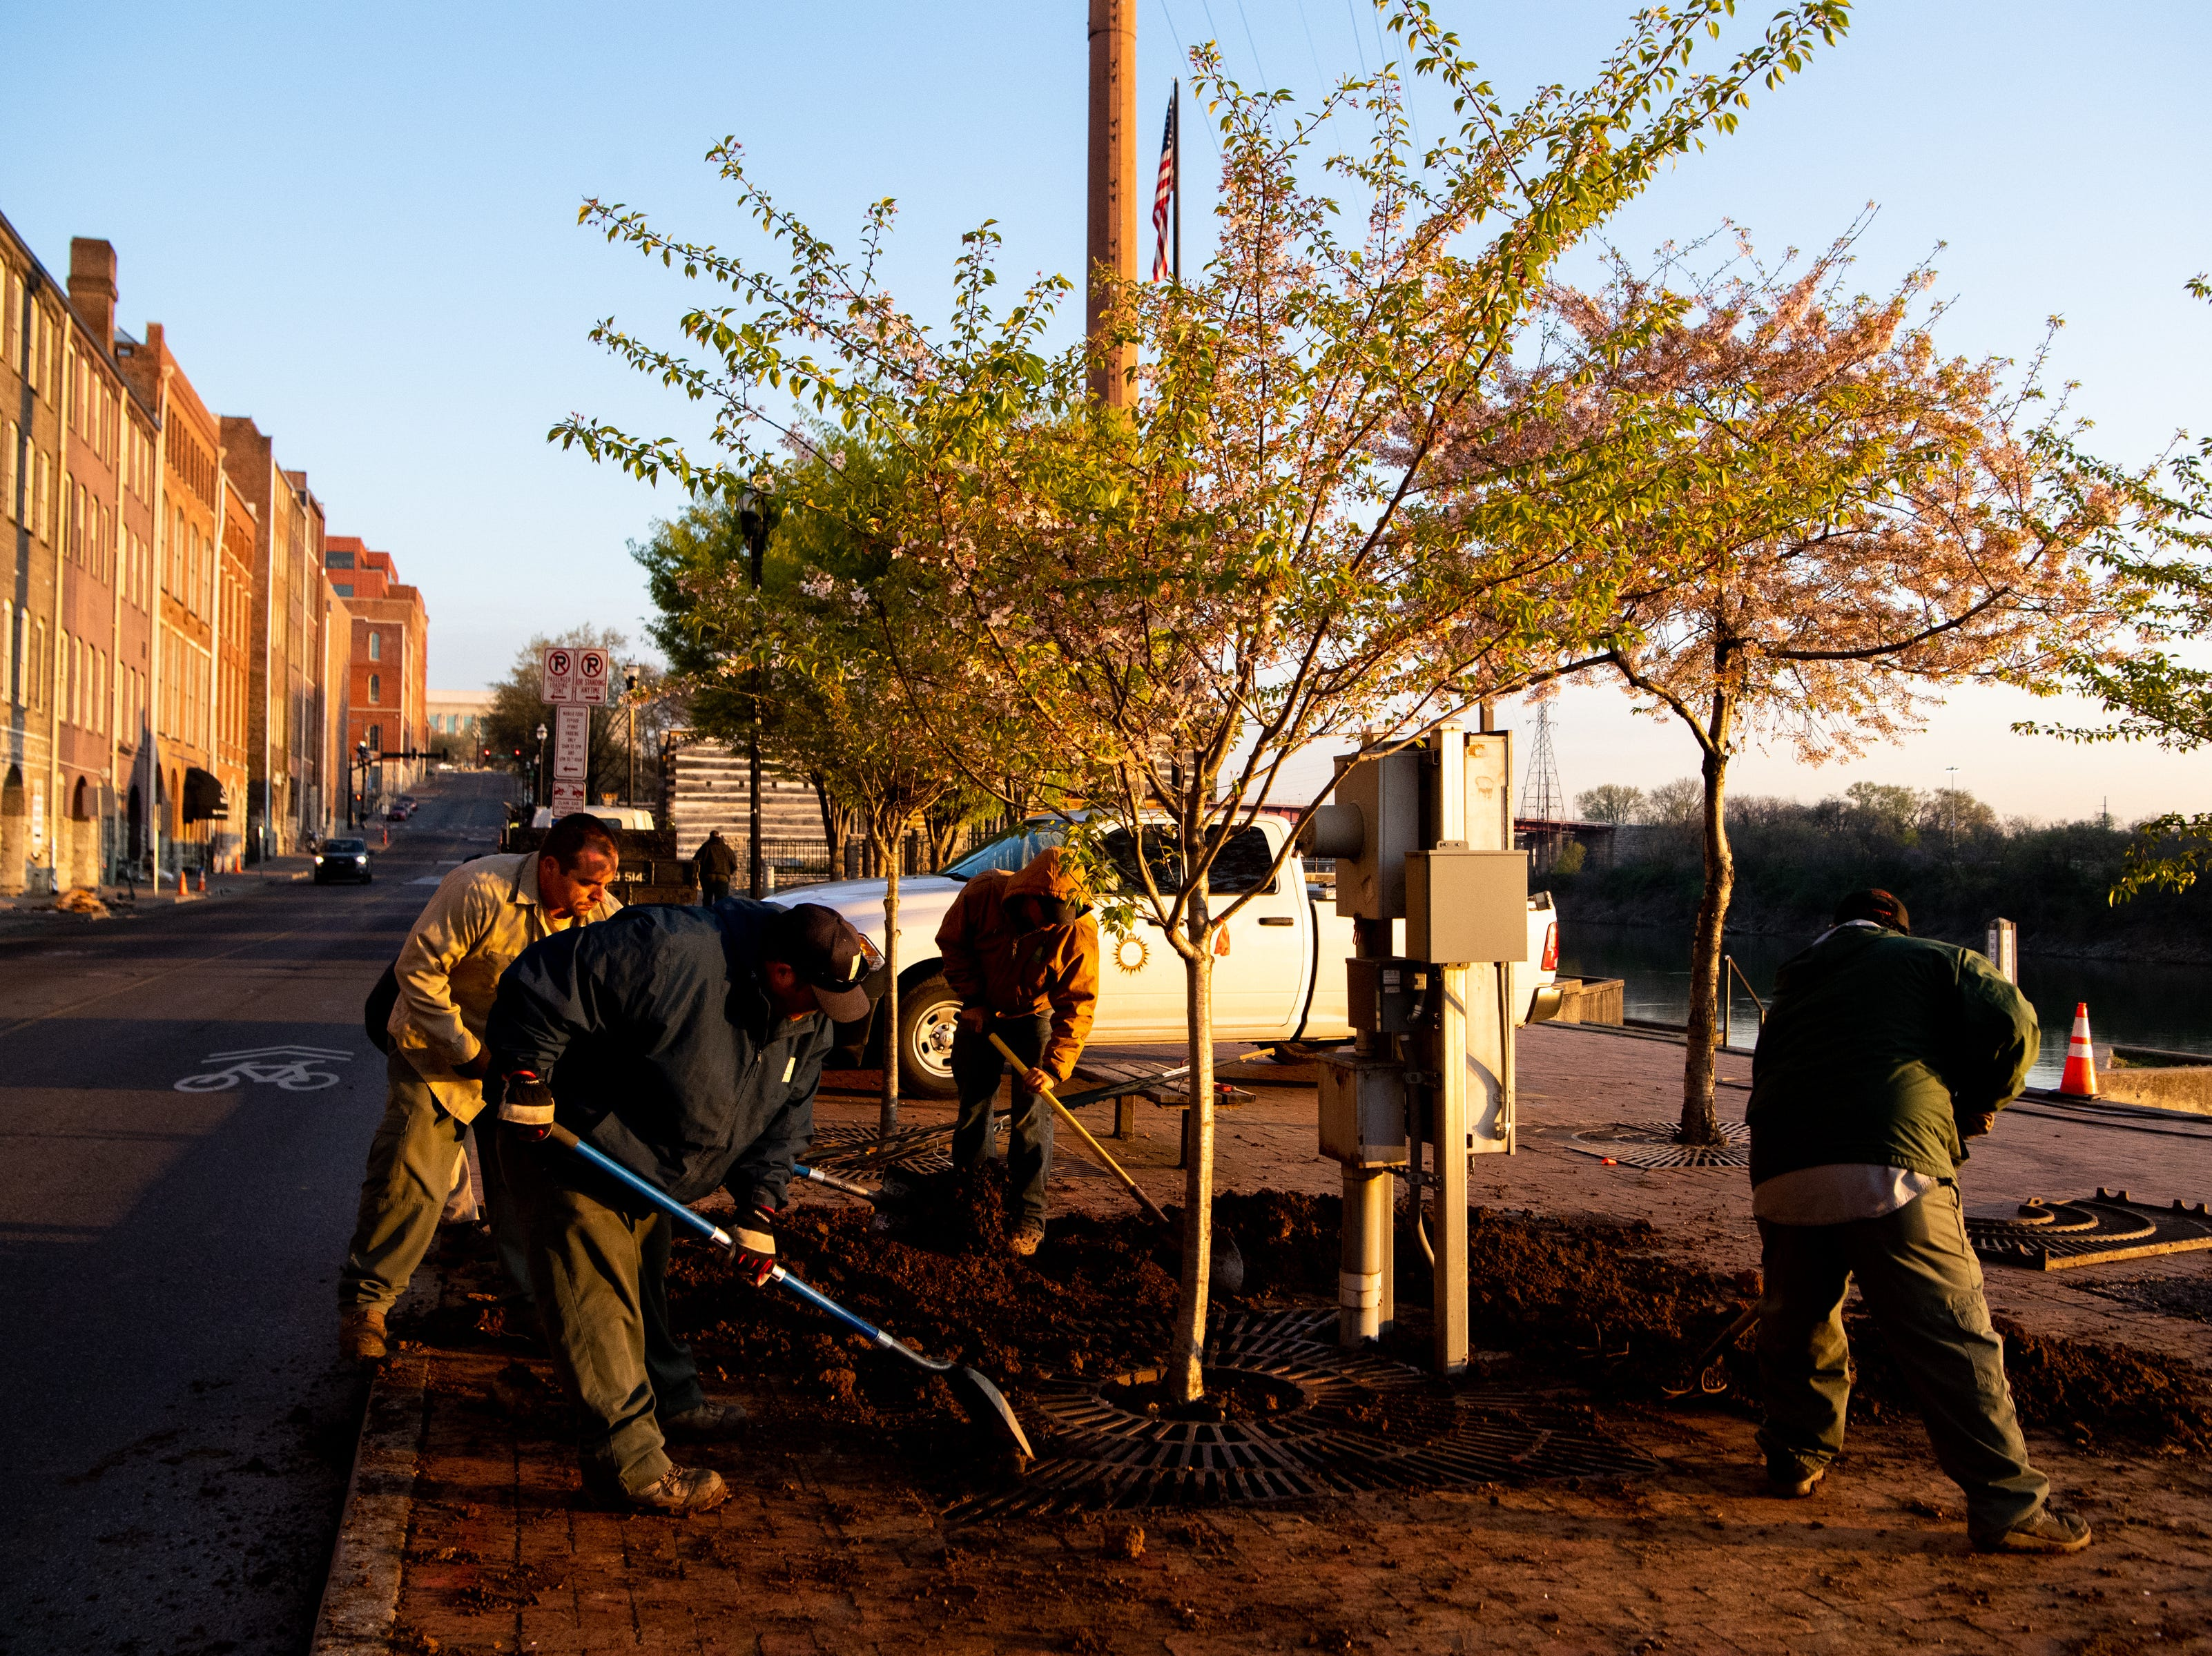 Metro Parks and Recreation workers place dirt around a Yoshino Cherry tree along the riverfront Wednesday, April 3, 2019, in Nashville, Tenn. The City is transplanting the trees after protest of chopping the trees down to make room for a giant stage for the upcoming NFL Draft.